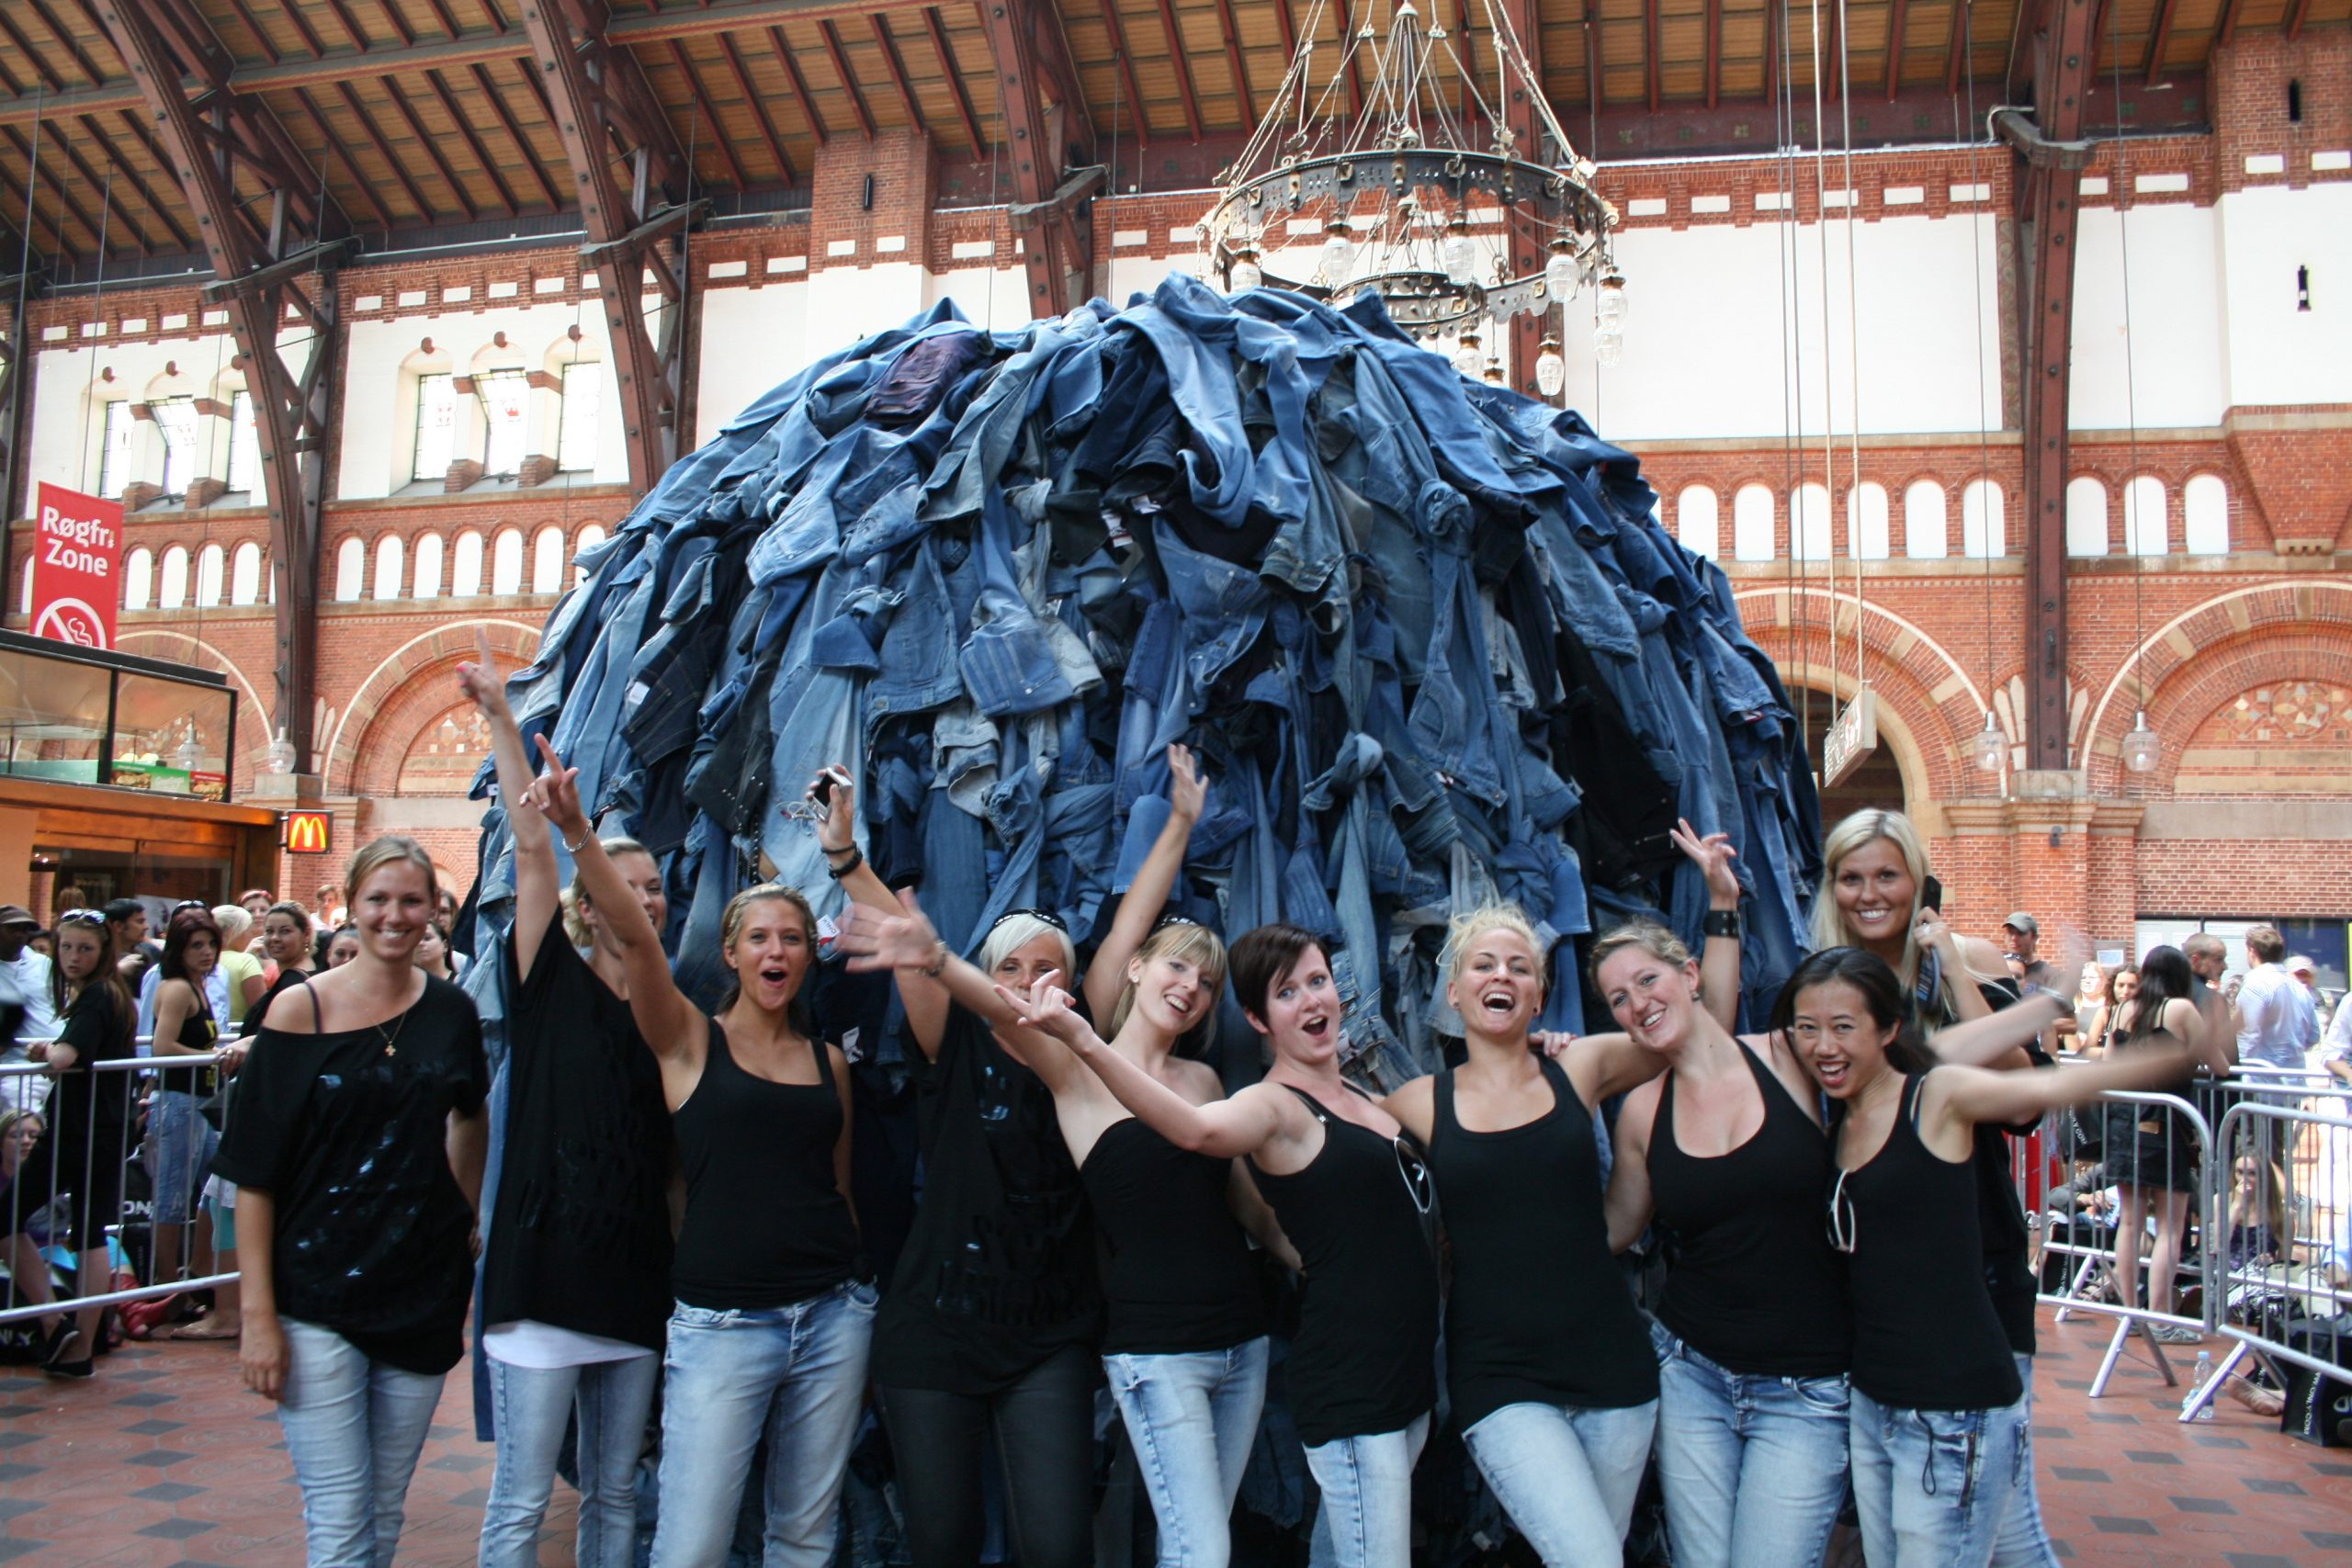 The Jeans Ball